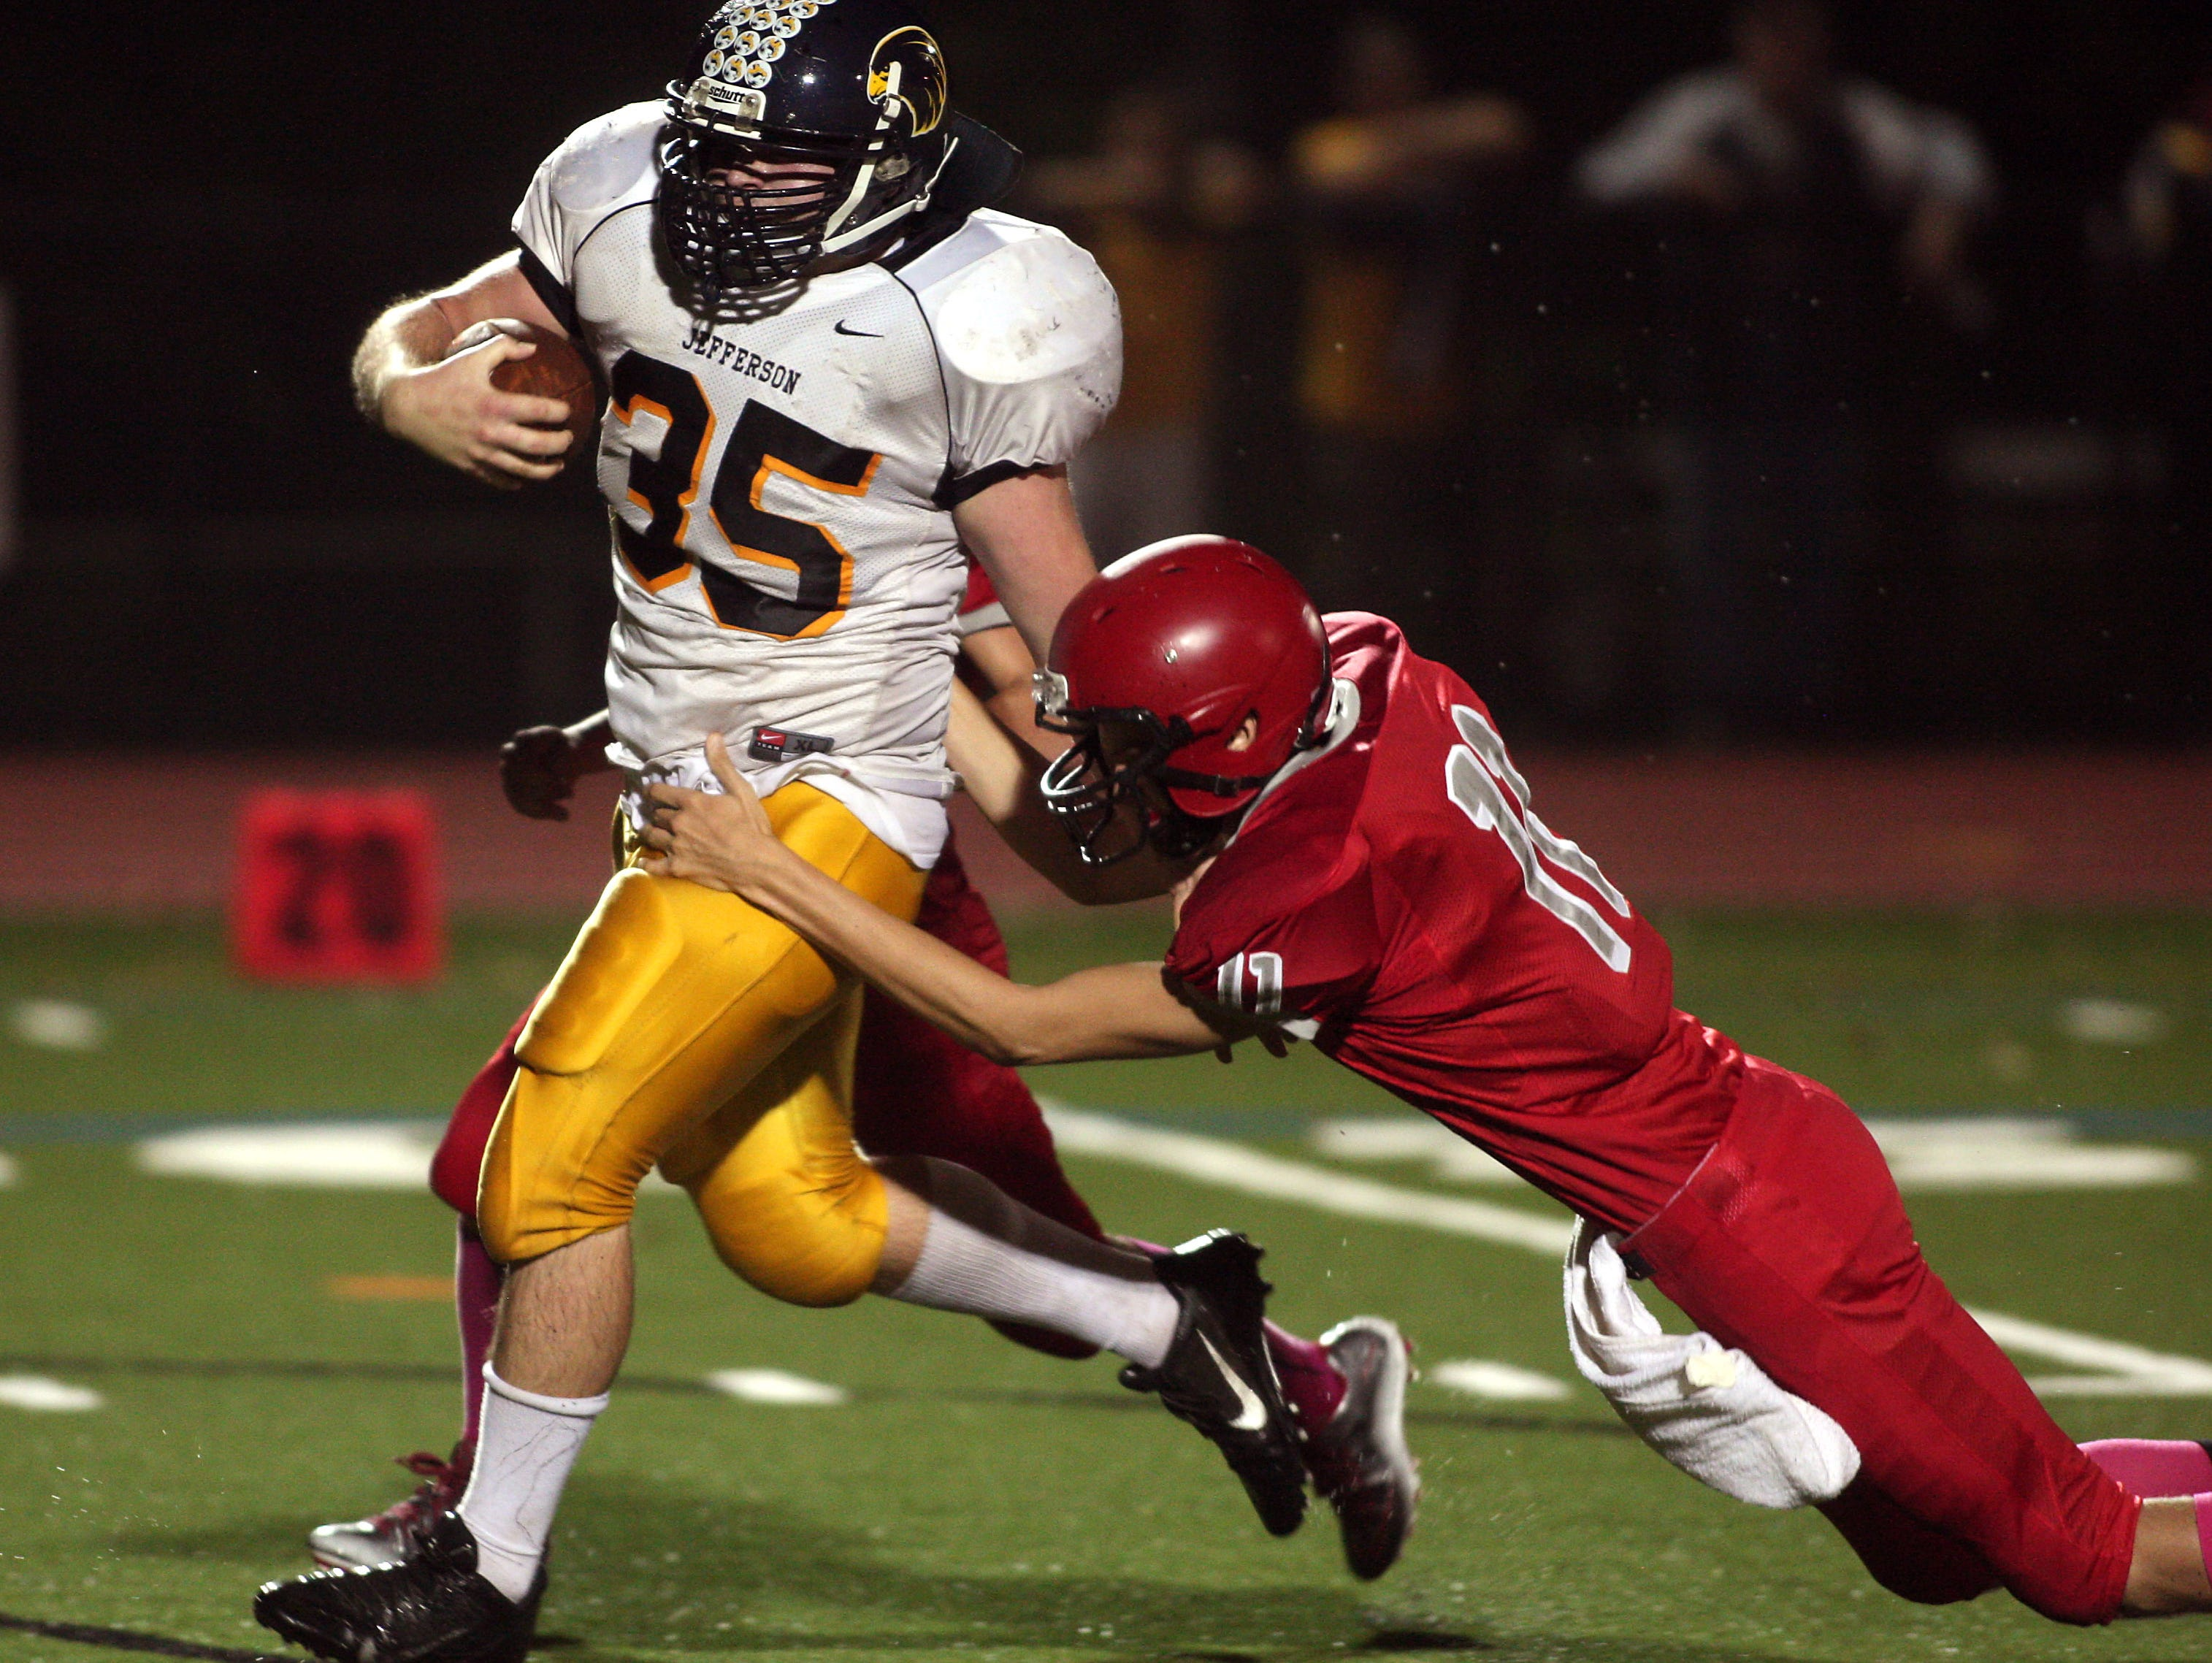 Jefferson linebacker Avery Sheruda barrels to the Parsippany 4-yard-line after picking up a Red Hawk fumble in a Friday night football matchup. October 9, 2015, Parsippany, NJ.